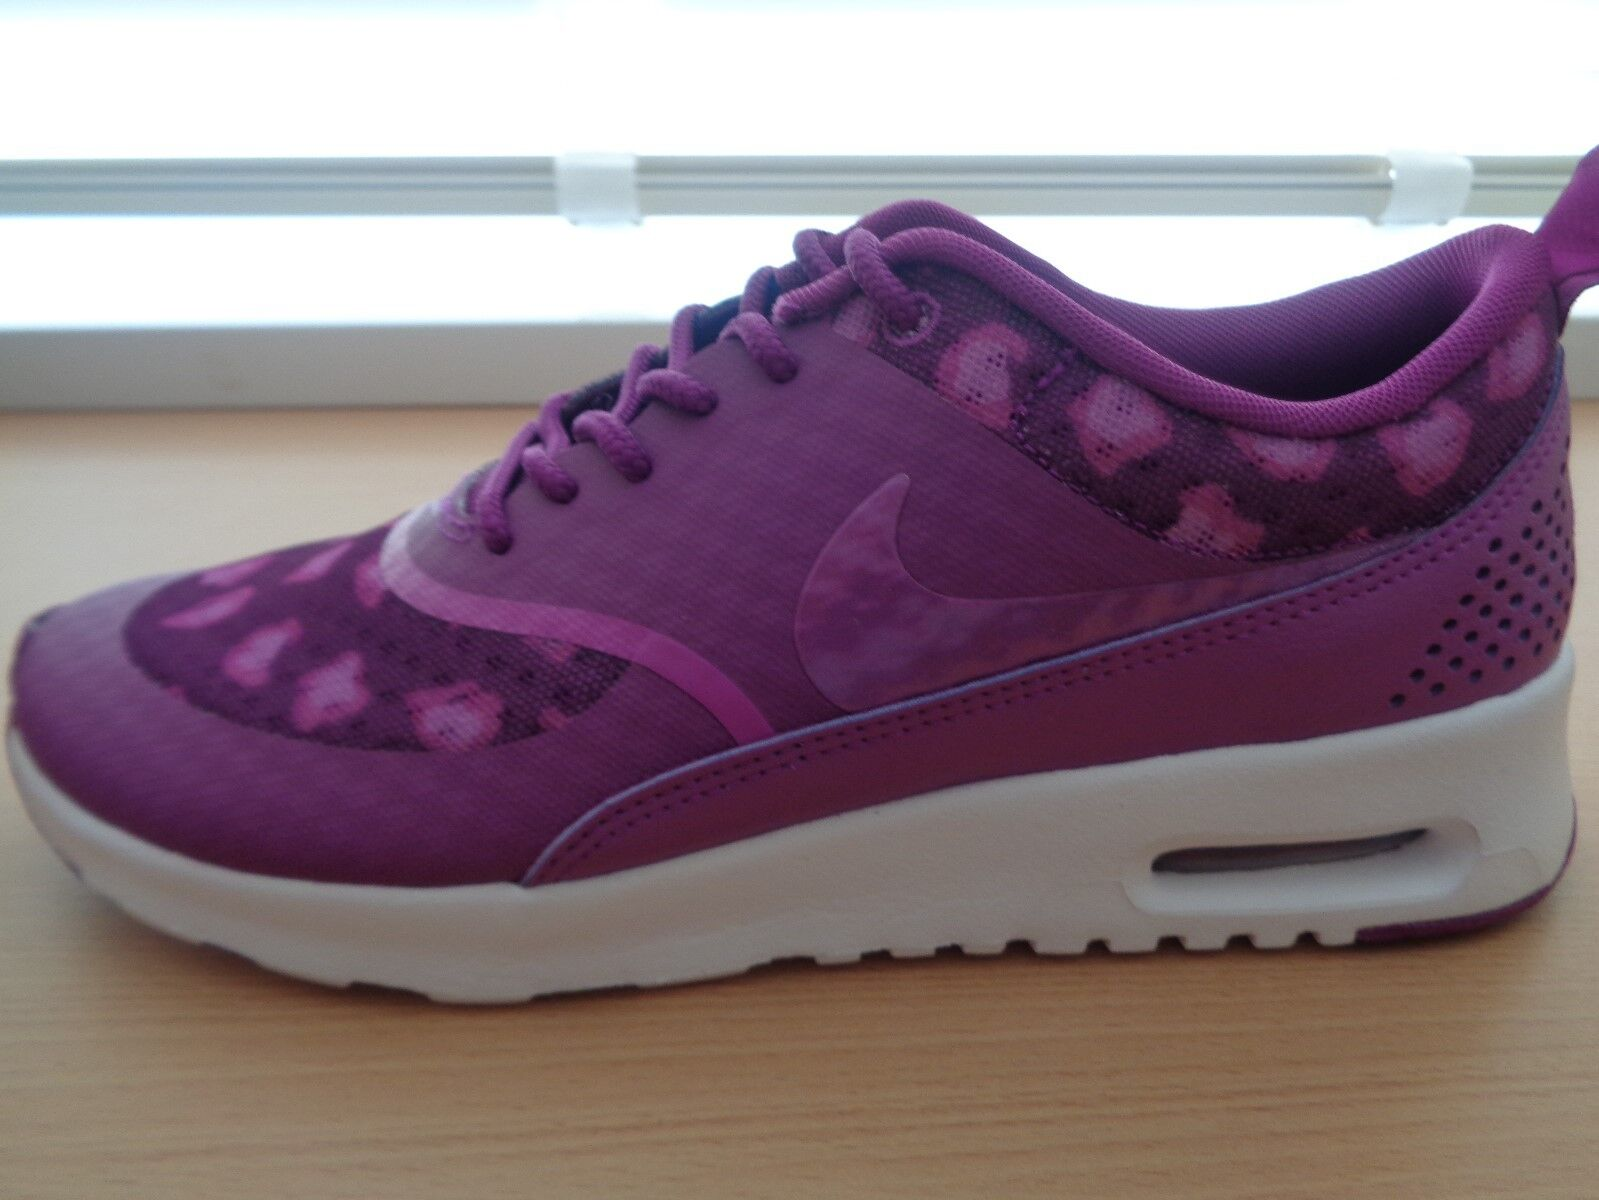 new product dc93f 81604 ... Nike air max thea print pour femme baskets 599408 501 501 501 eu 37.5  us 6.5 ...